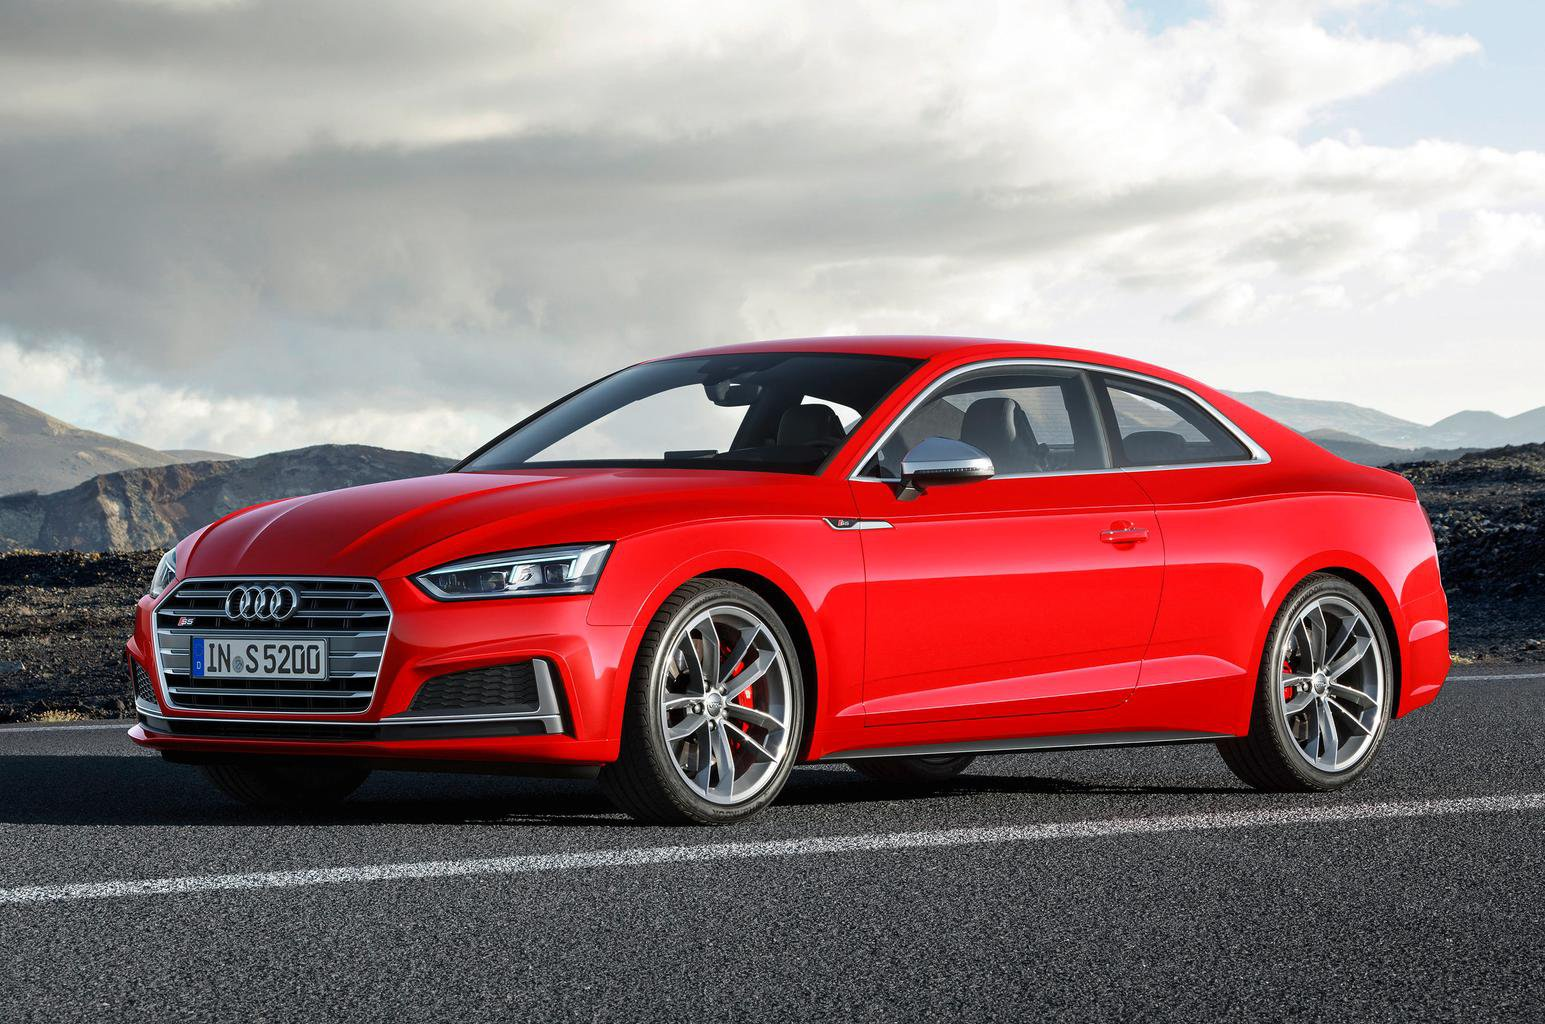 New Audi A5 unveiled